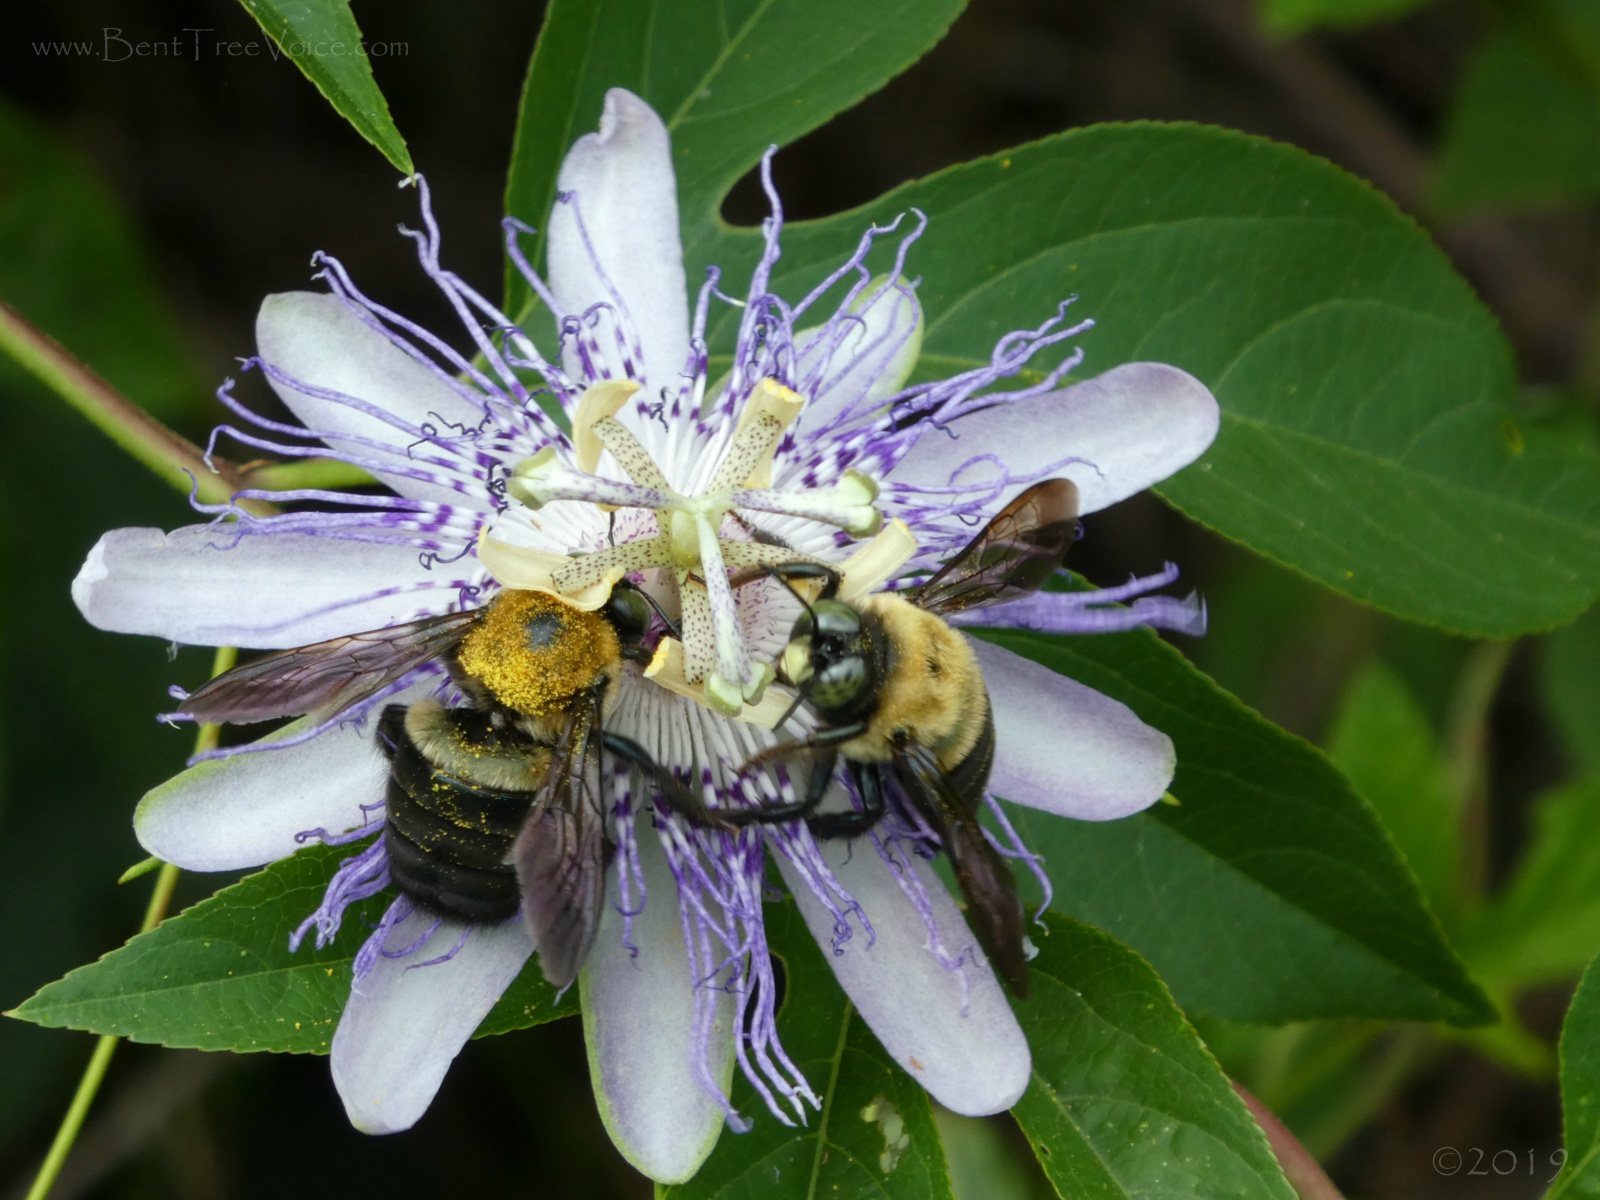 August 21, 2019 - Passionflower and bees in Bent Tree